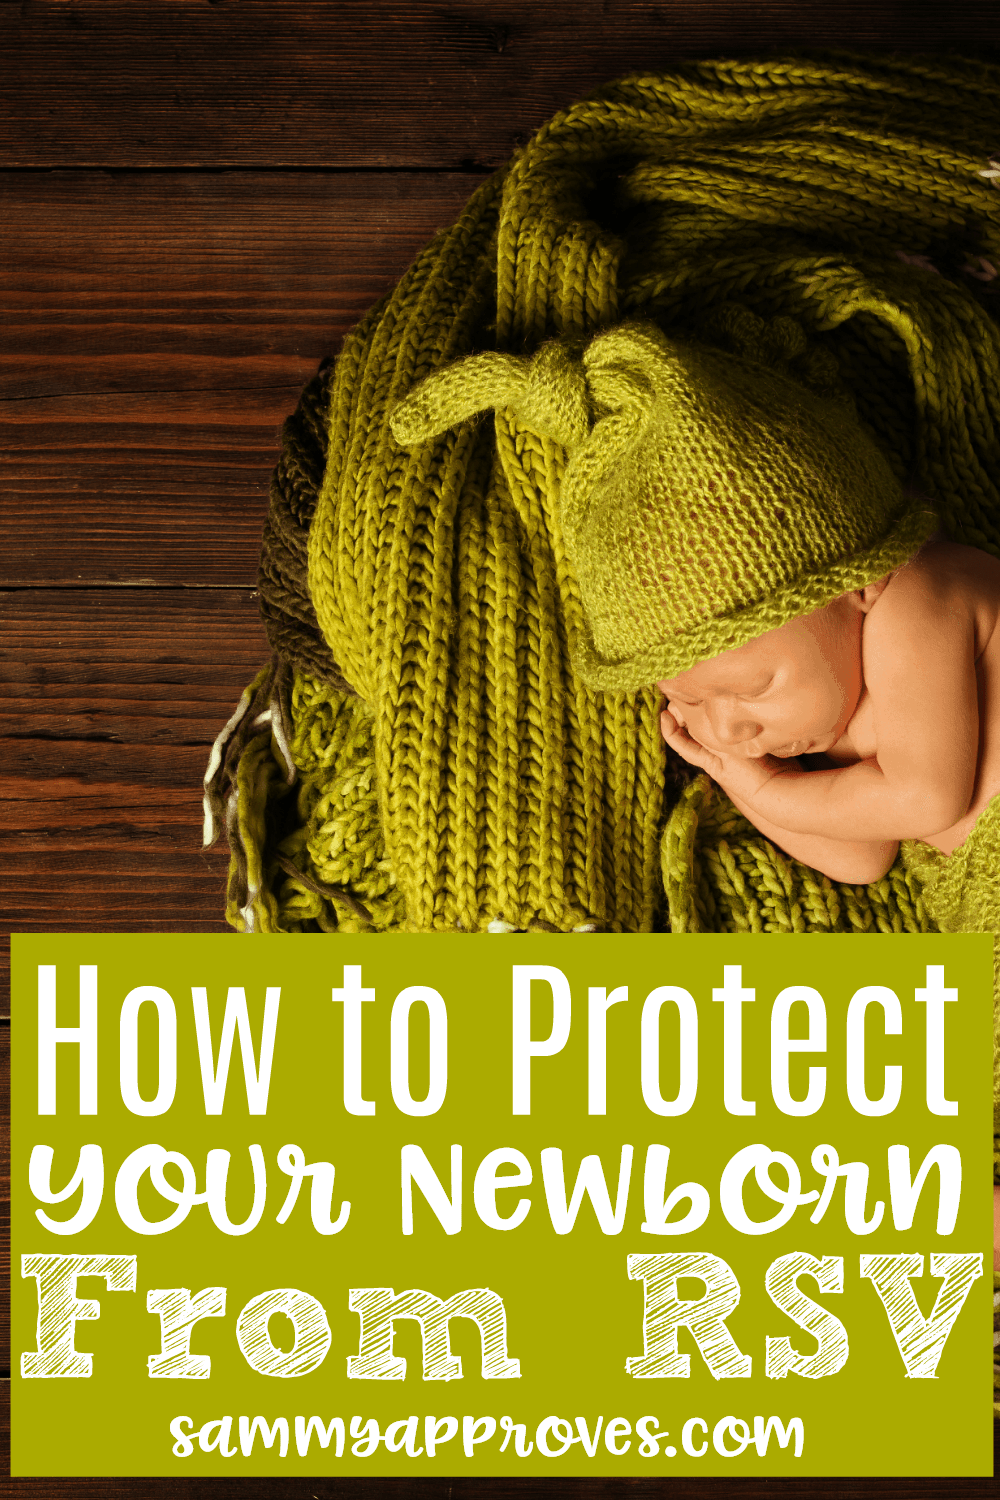 How to Protect Your Newborn From RSV